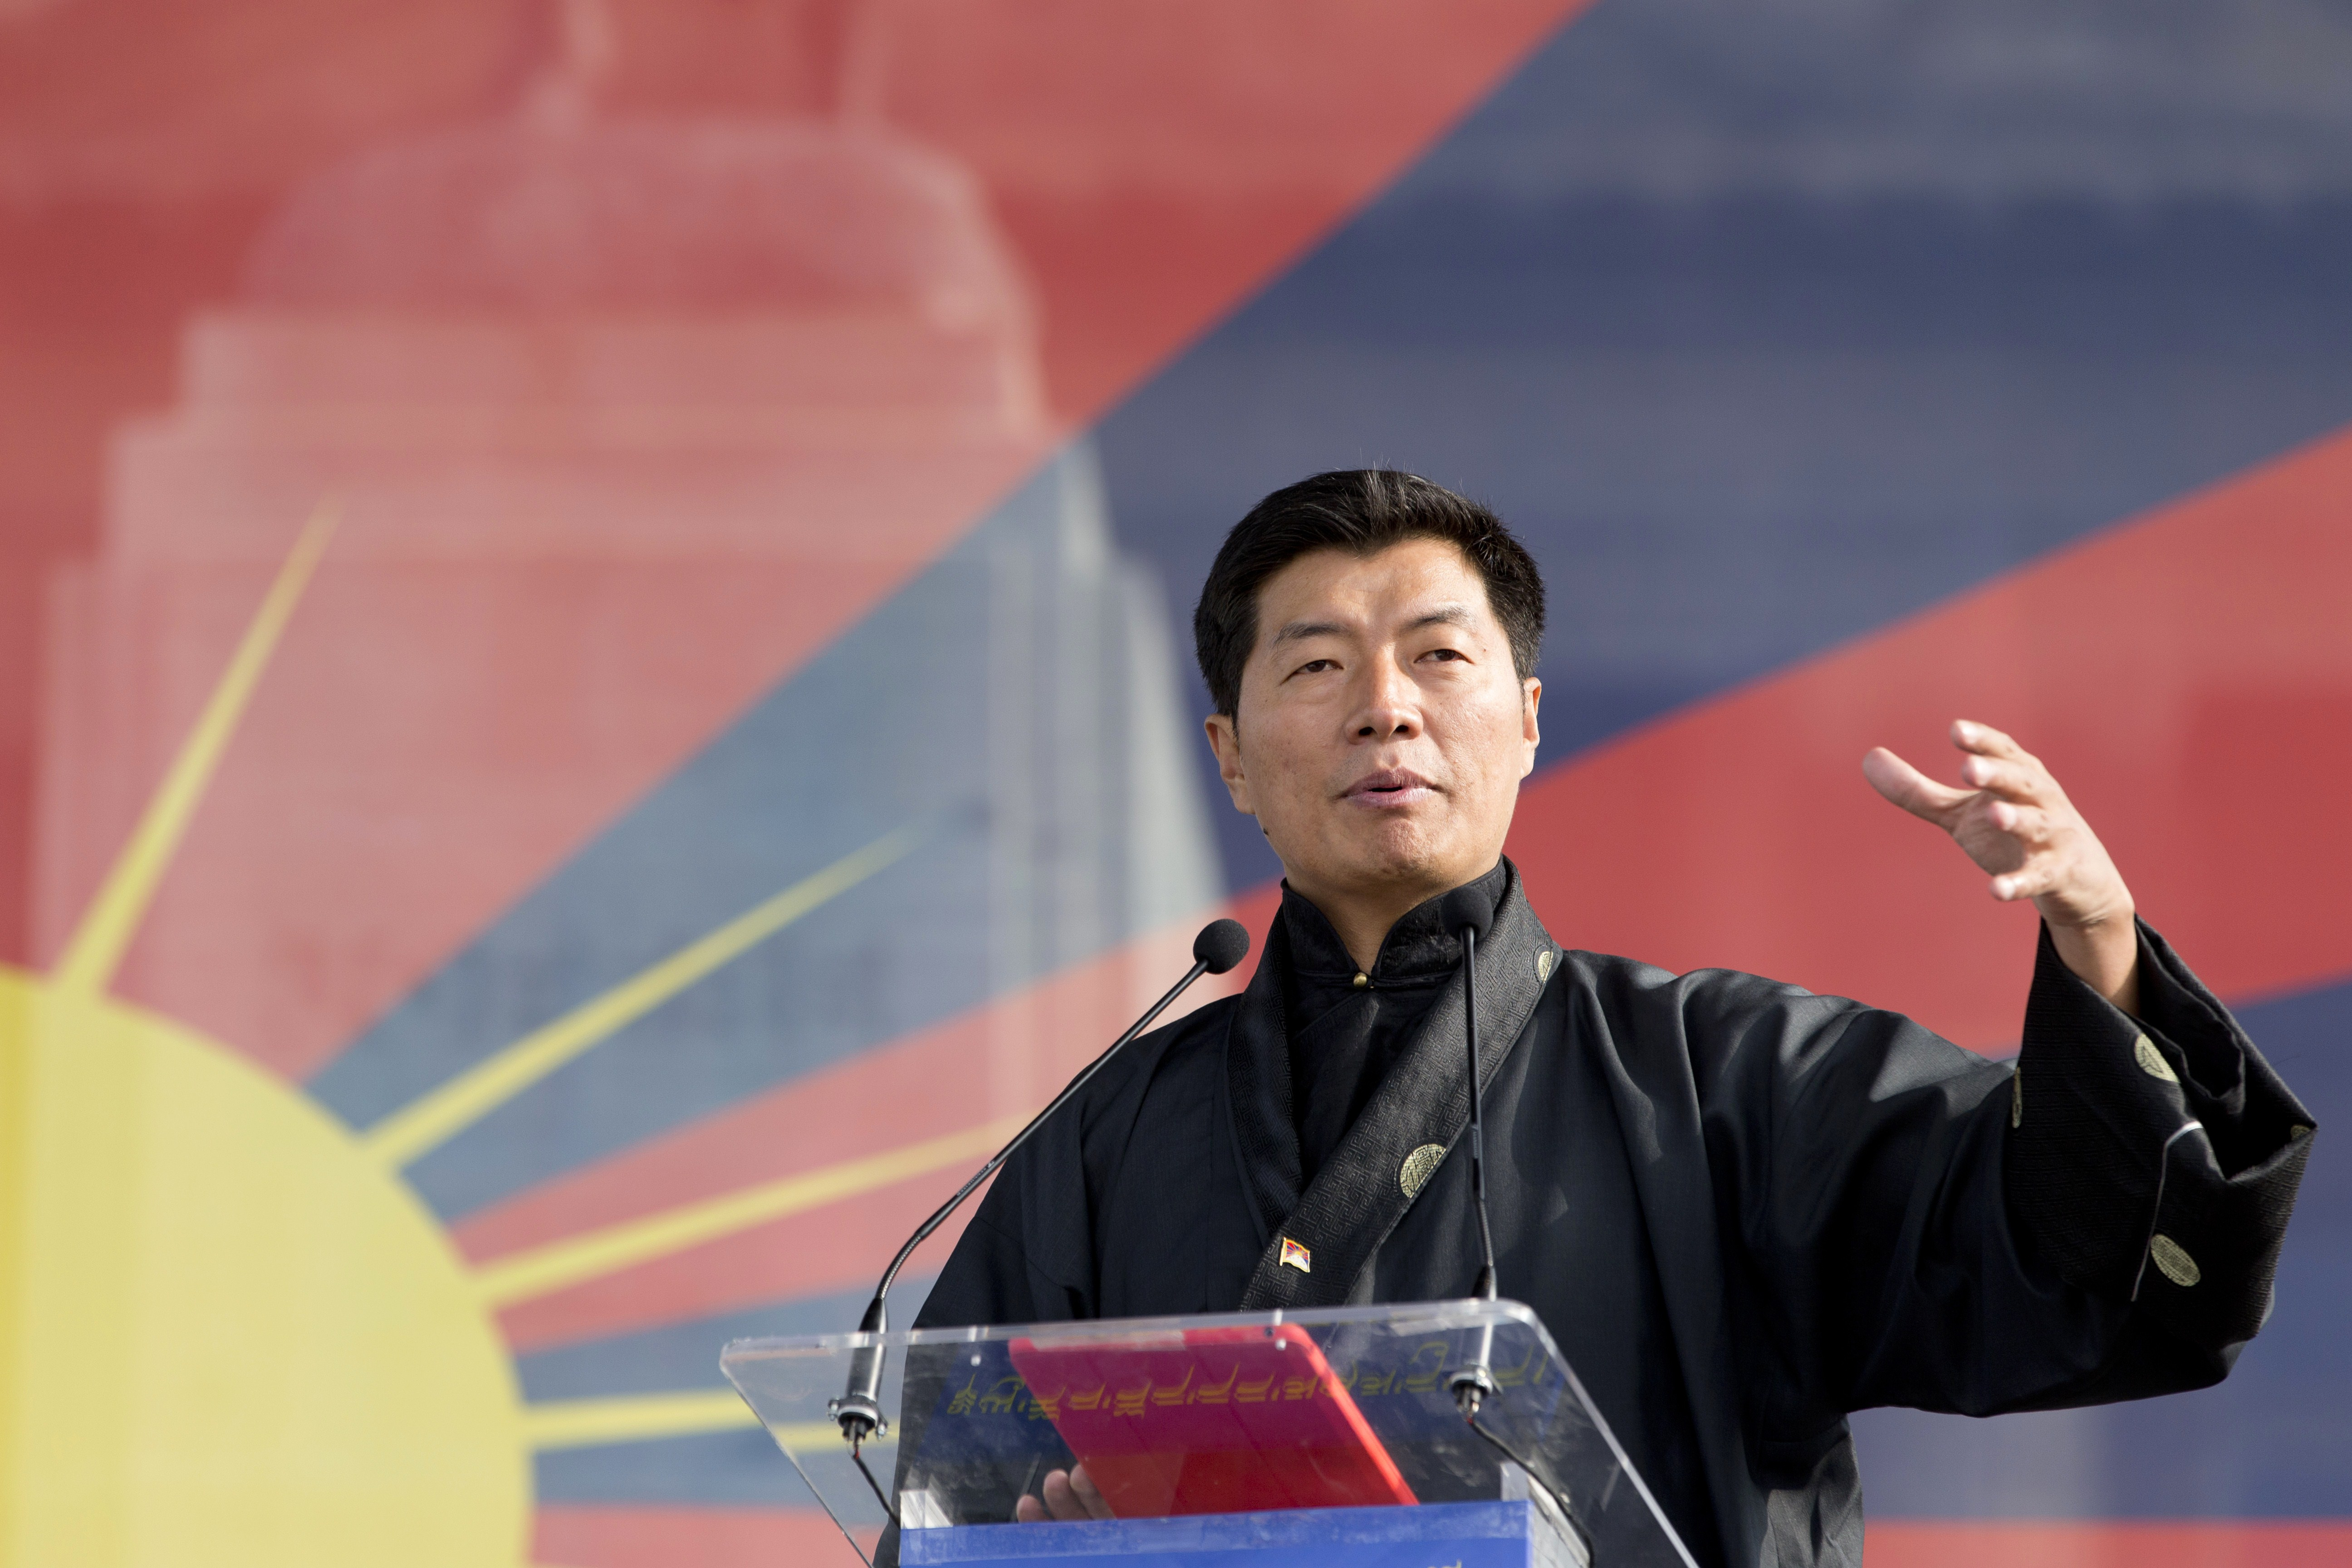 Lobsang Sangay, Sikyong (prime minister) of the Tibetan Government-in-Exile, delivers a speech during a European rally marking a failed 1959 uprising against China on March 14, 2015 in Paris.